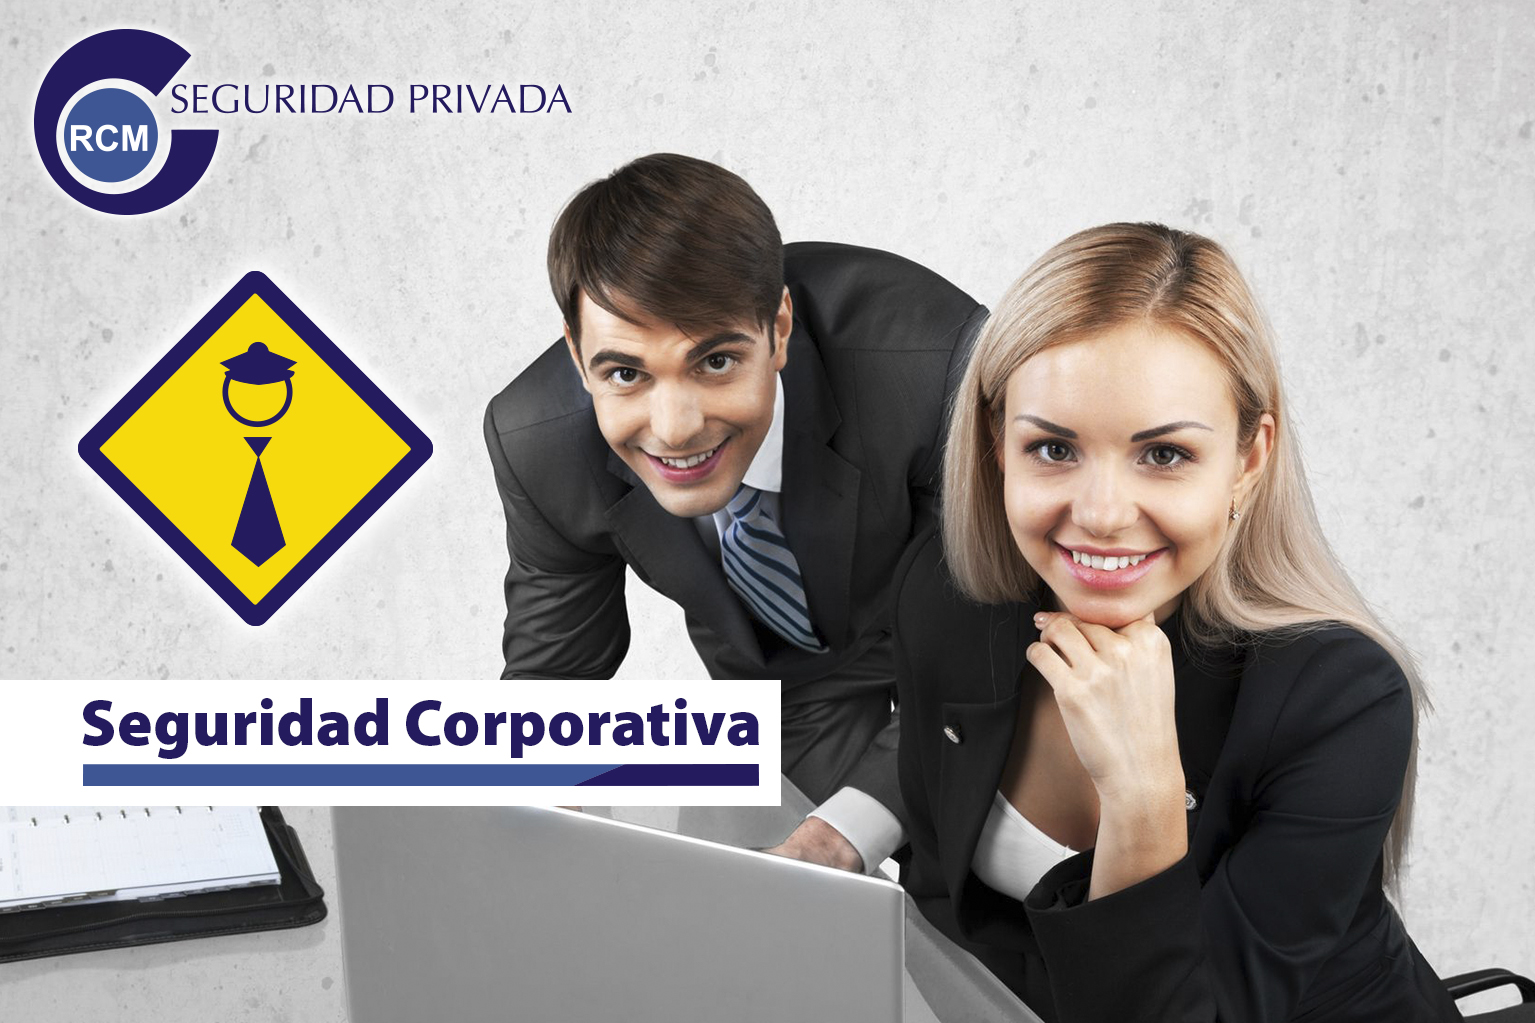 SEGURIDAD PRIVADA MEXICO OFICINA